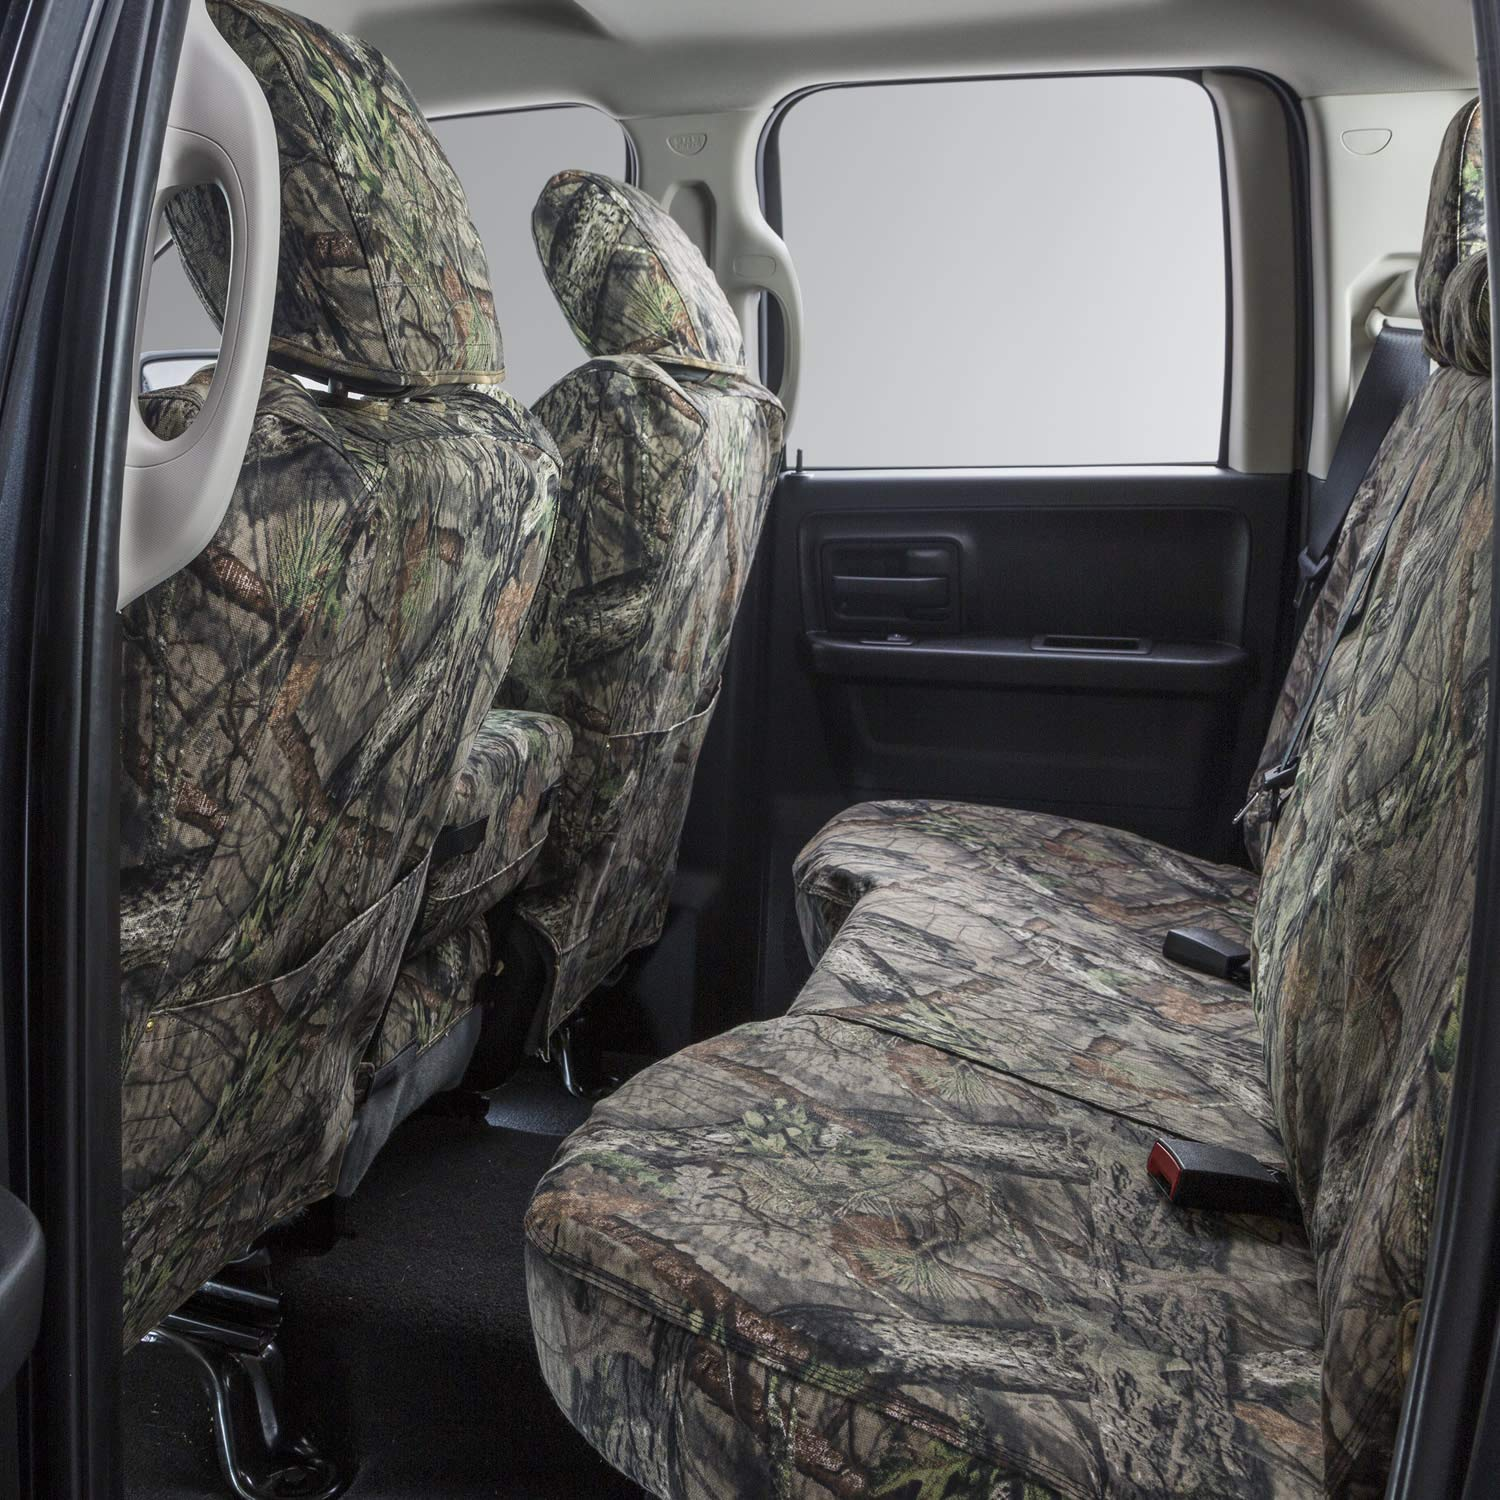 Covercraft Carhartt Mossy Oak Camo SeatSaver Second Row Custom Fit Seat Cover for Select Ford F-250 Super Duty//F-350 Super Duty Models SSC7337CAMB Break-Up Country Duck Weave